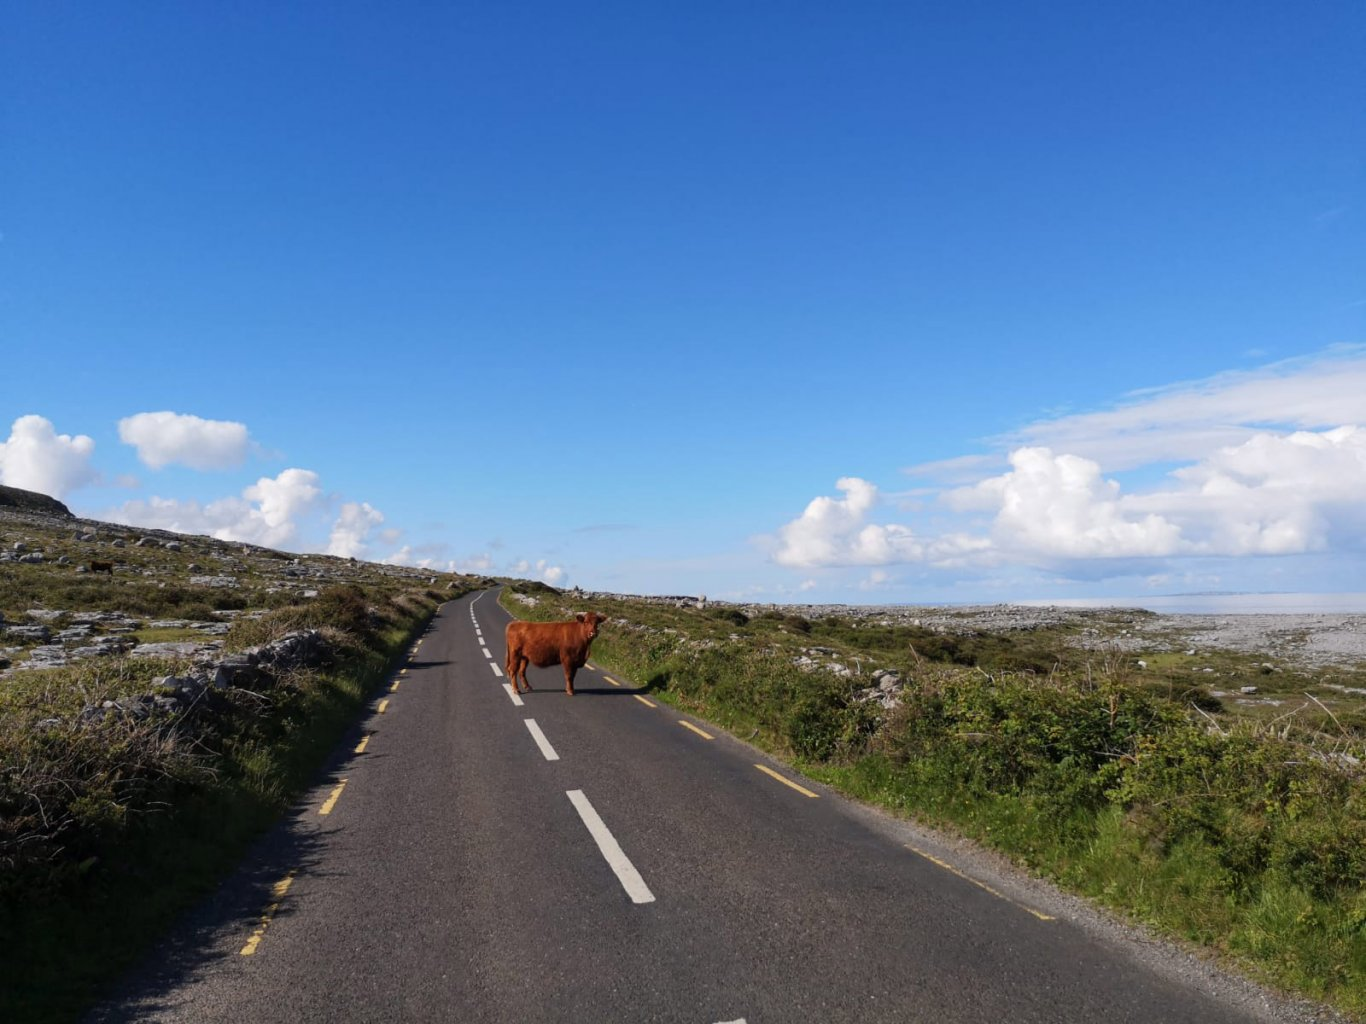 A cow in the middle of a country road